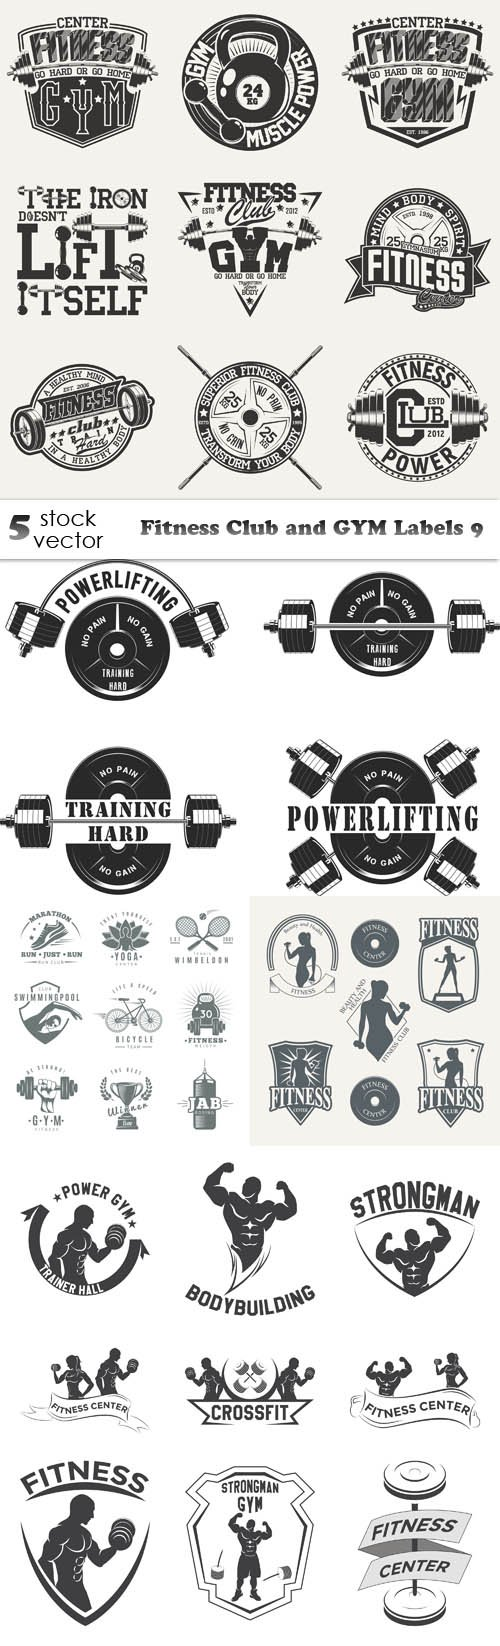 Vectors - Fitness Club and GYM Labels 9